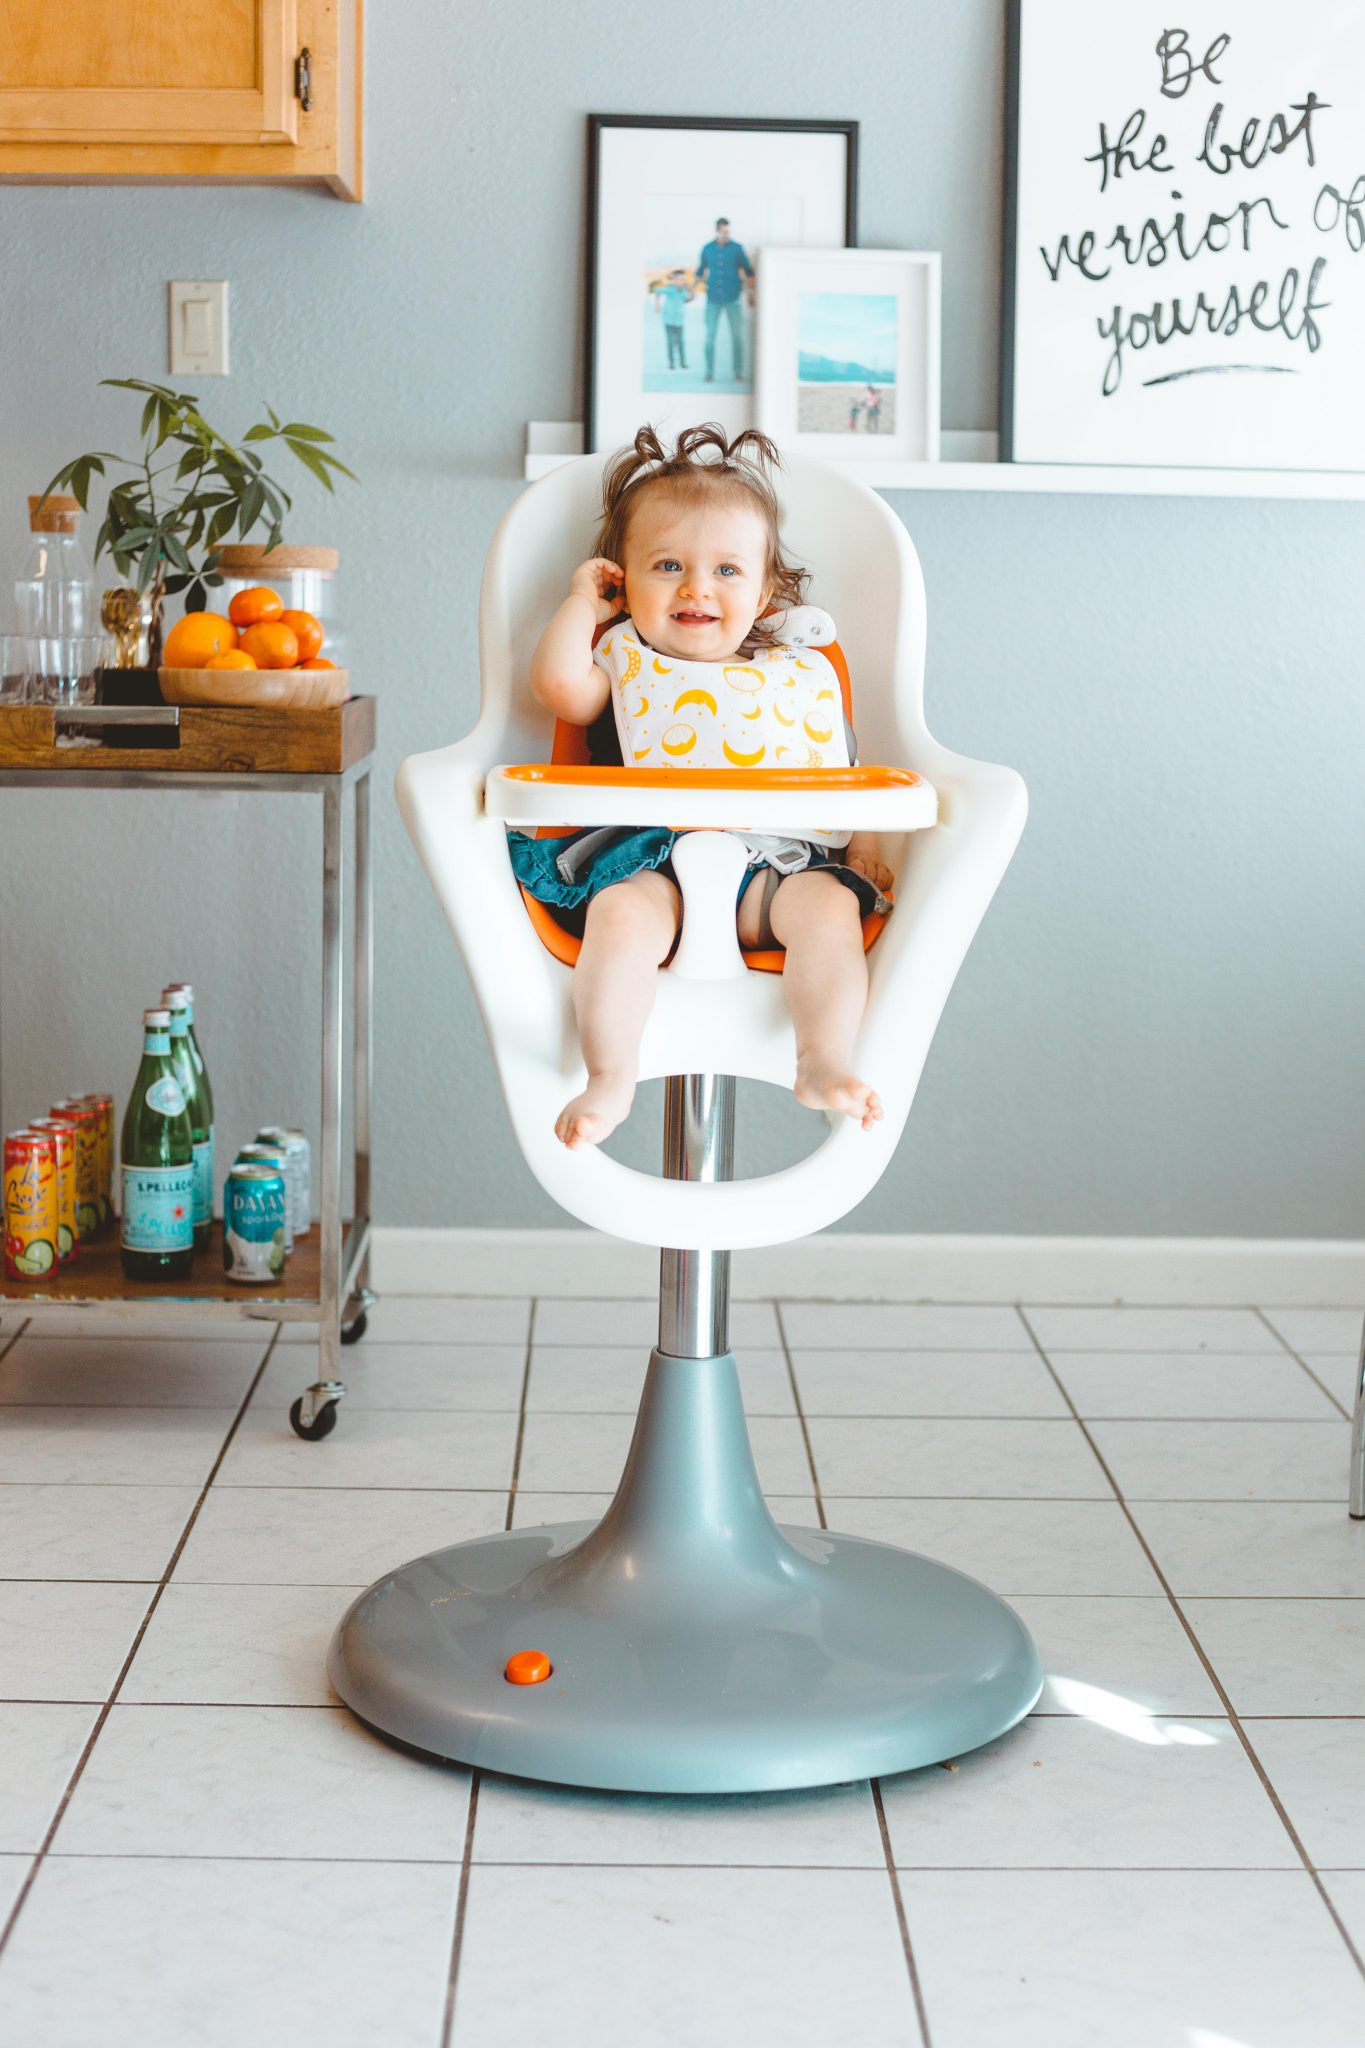 Top Baby Items of 2018 by popular San Francisco mommy blogger The Girl in The Yellow Dress